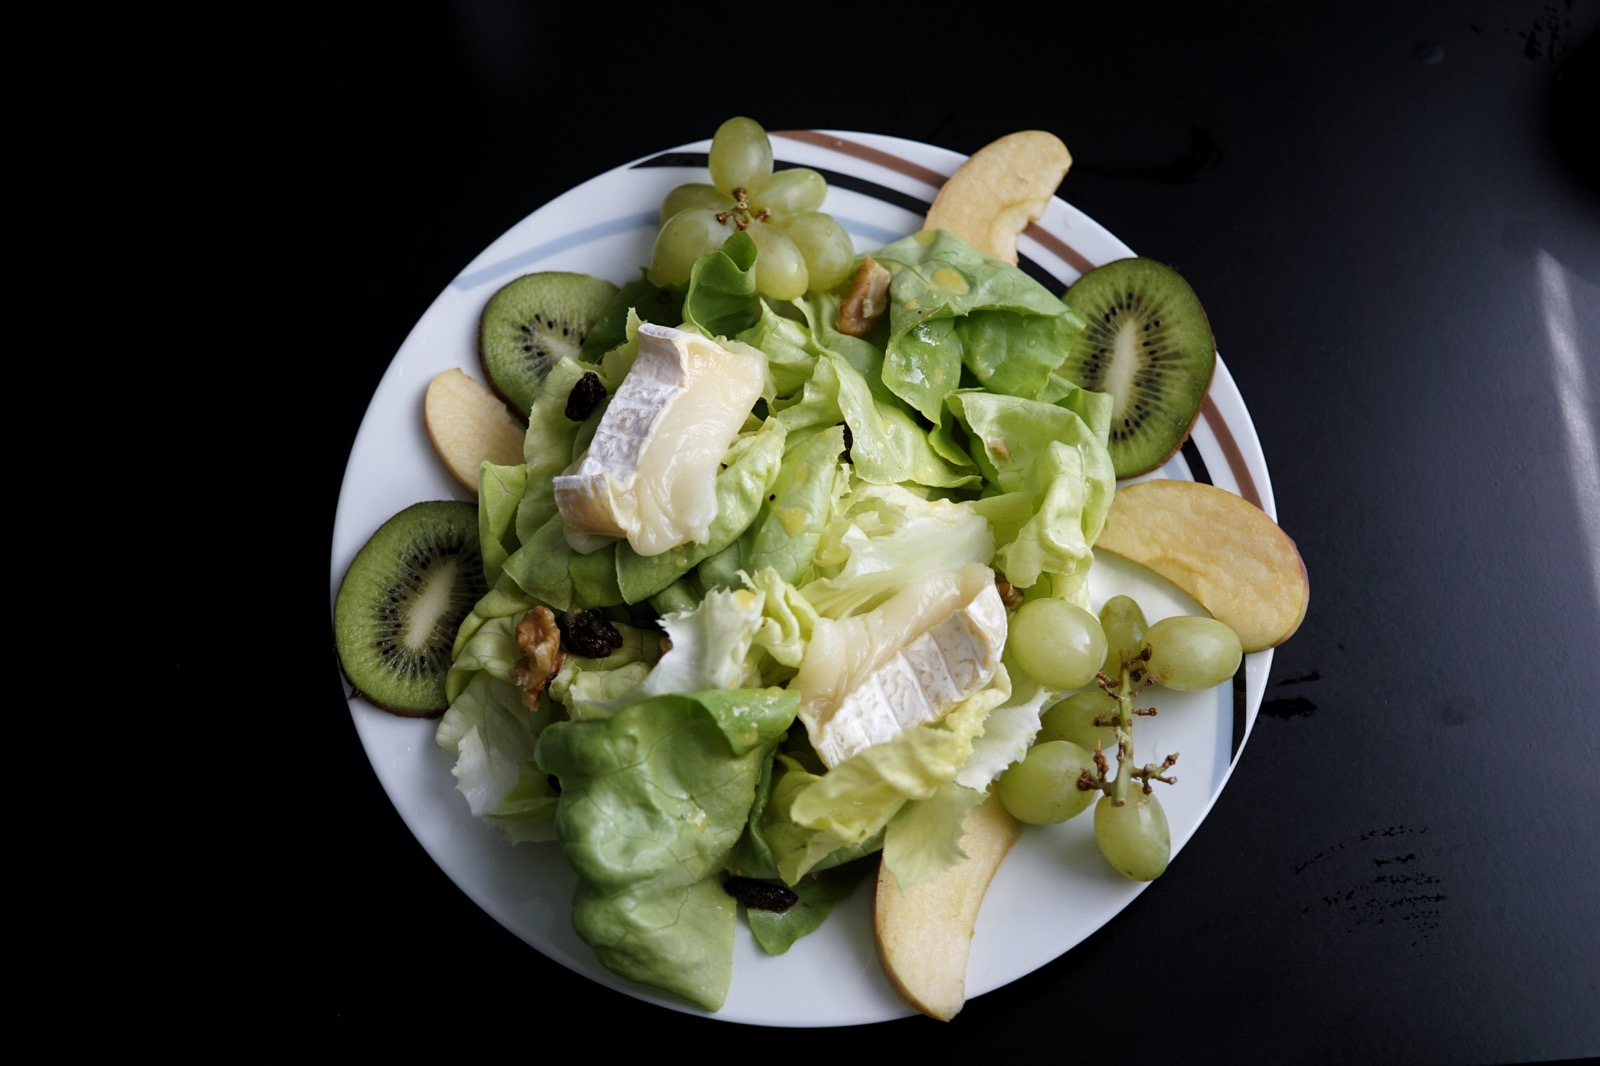 Apple and goat cheese salad recipe - Le Bol Monsieur Seguin